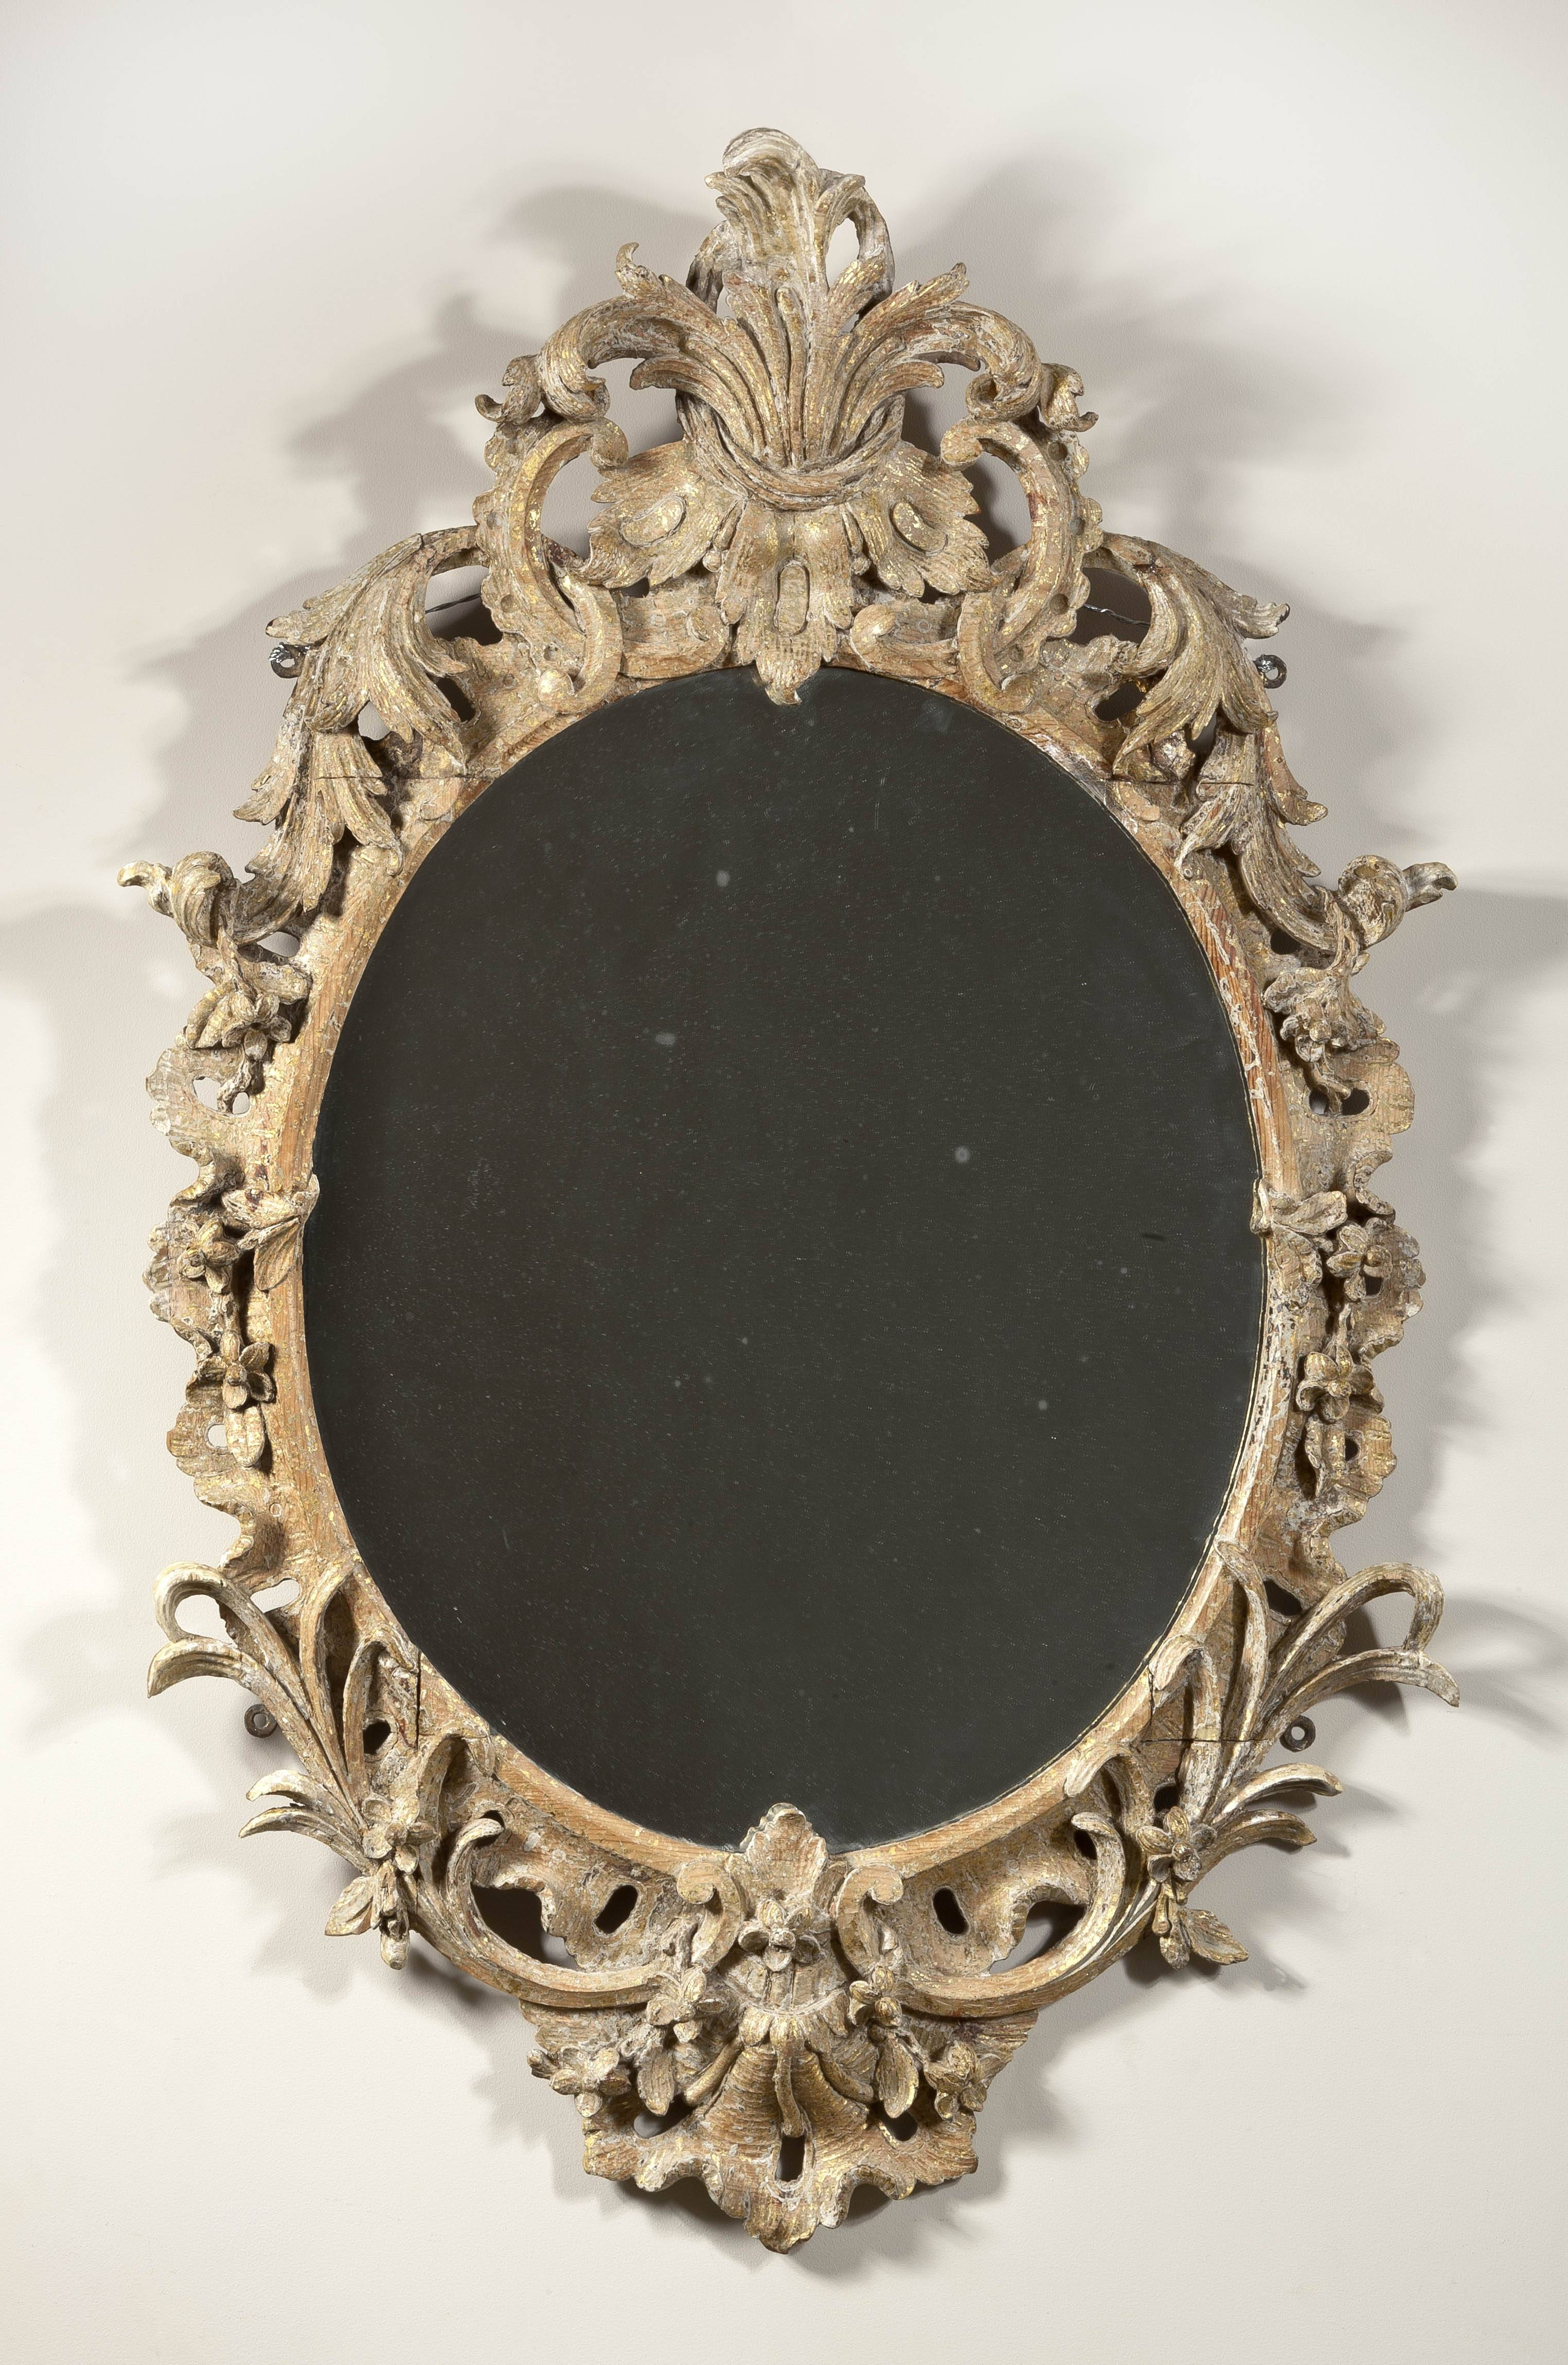 A Fine Carved And Gilt Oval Rococo Mirror | Clinton Howell throughout Rococo Mirrors (Image 5 of 25)